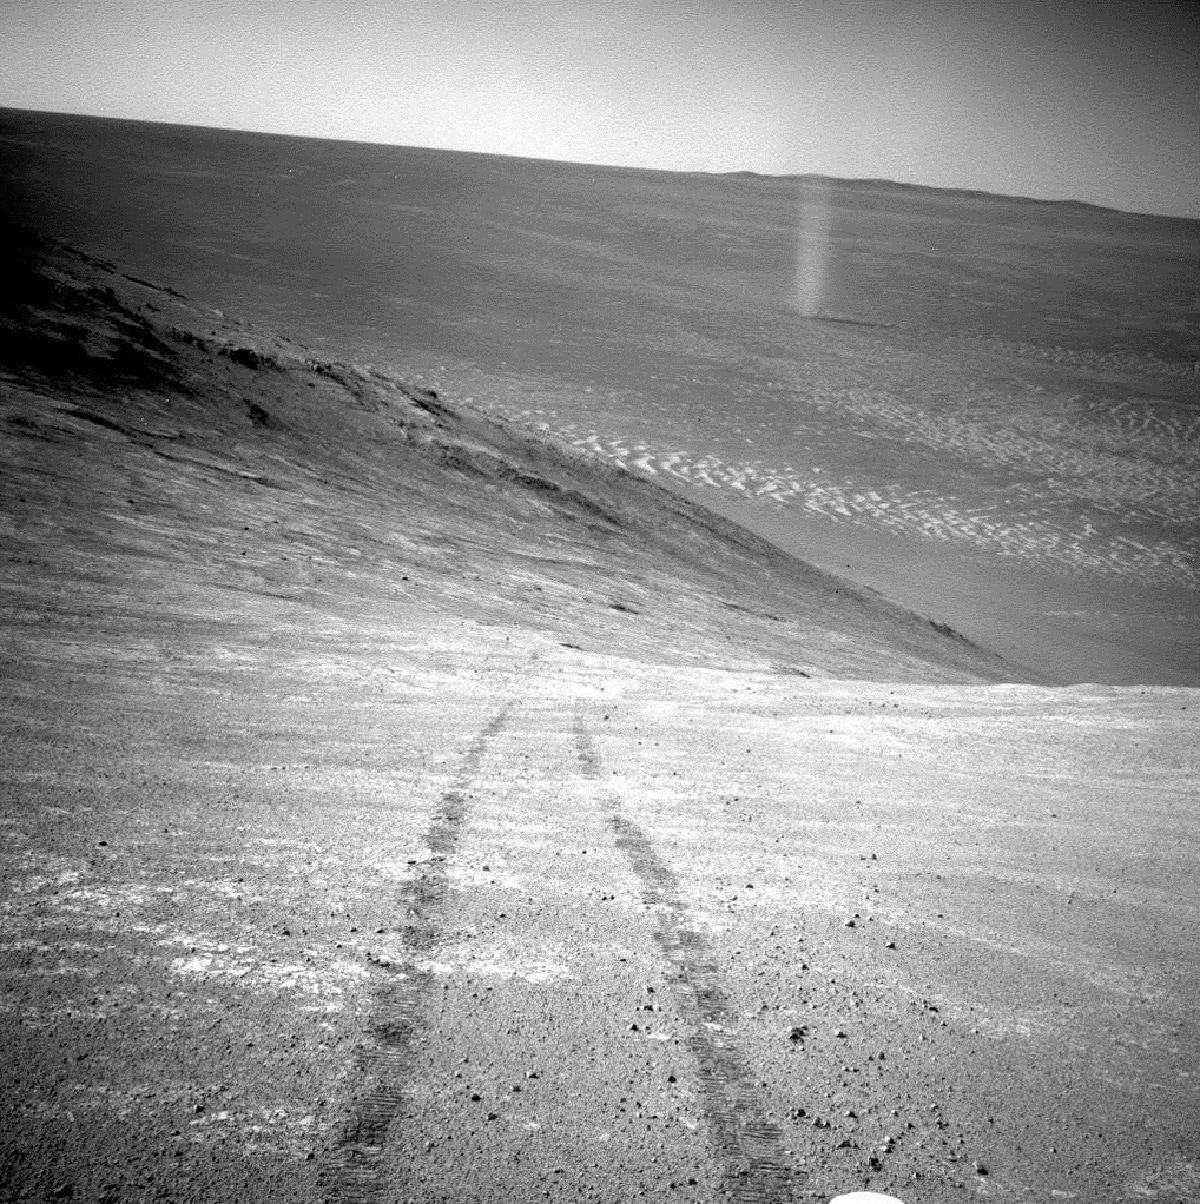 This photo made available by NASA shows a dust devil in a valley on Mars, seen by the Opportunity rover perched on a ridge. The view looks back at the rover's tracks leading up the north-facing slope of